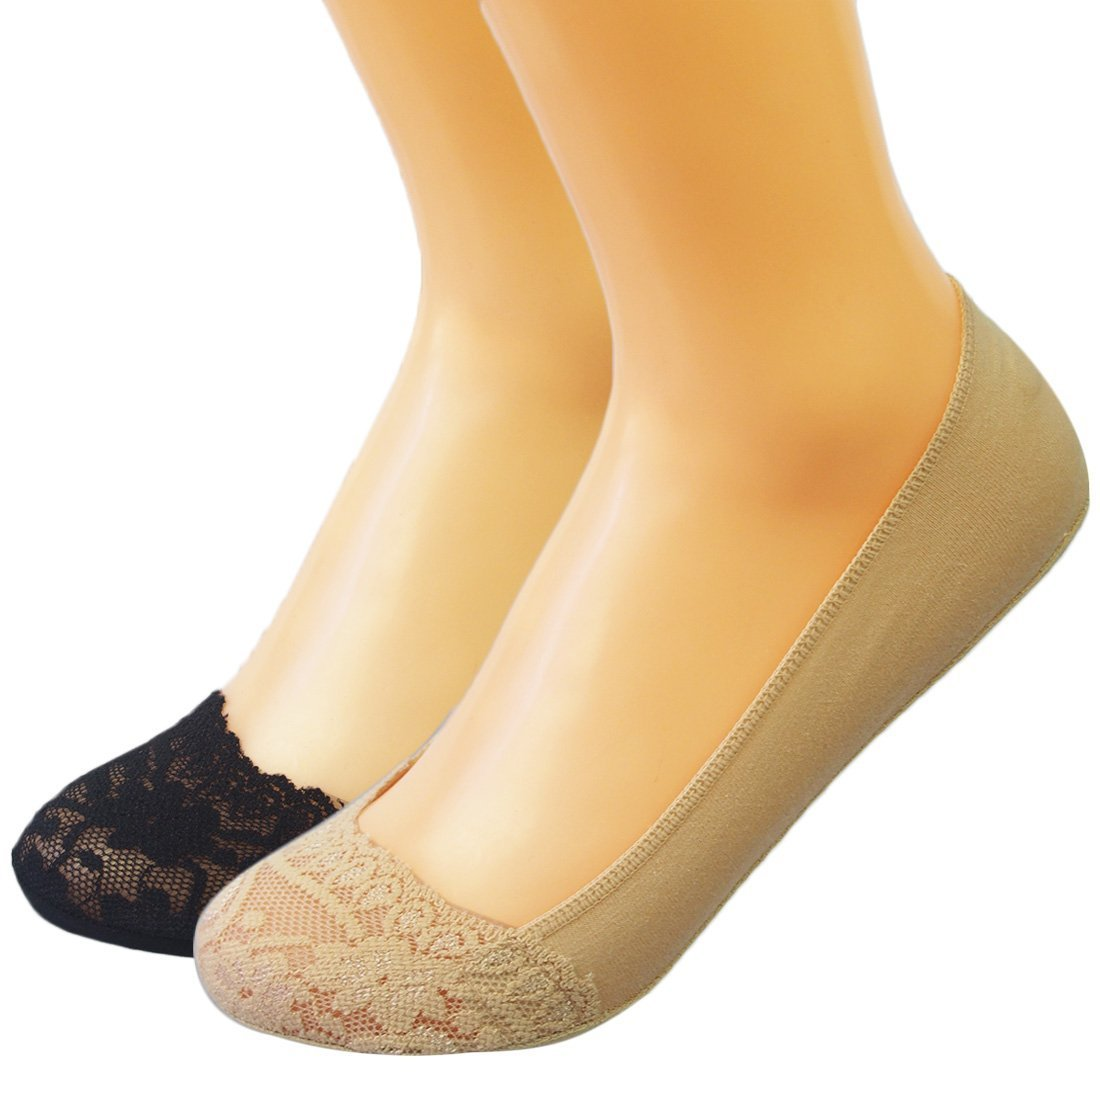 kilofly No Show Silicone Heel Grip Non-Skid Socks [2 Pairs Set, Black & Beige] FTW363set2